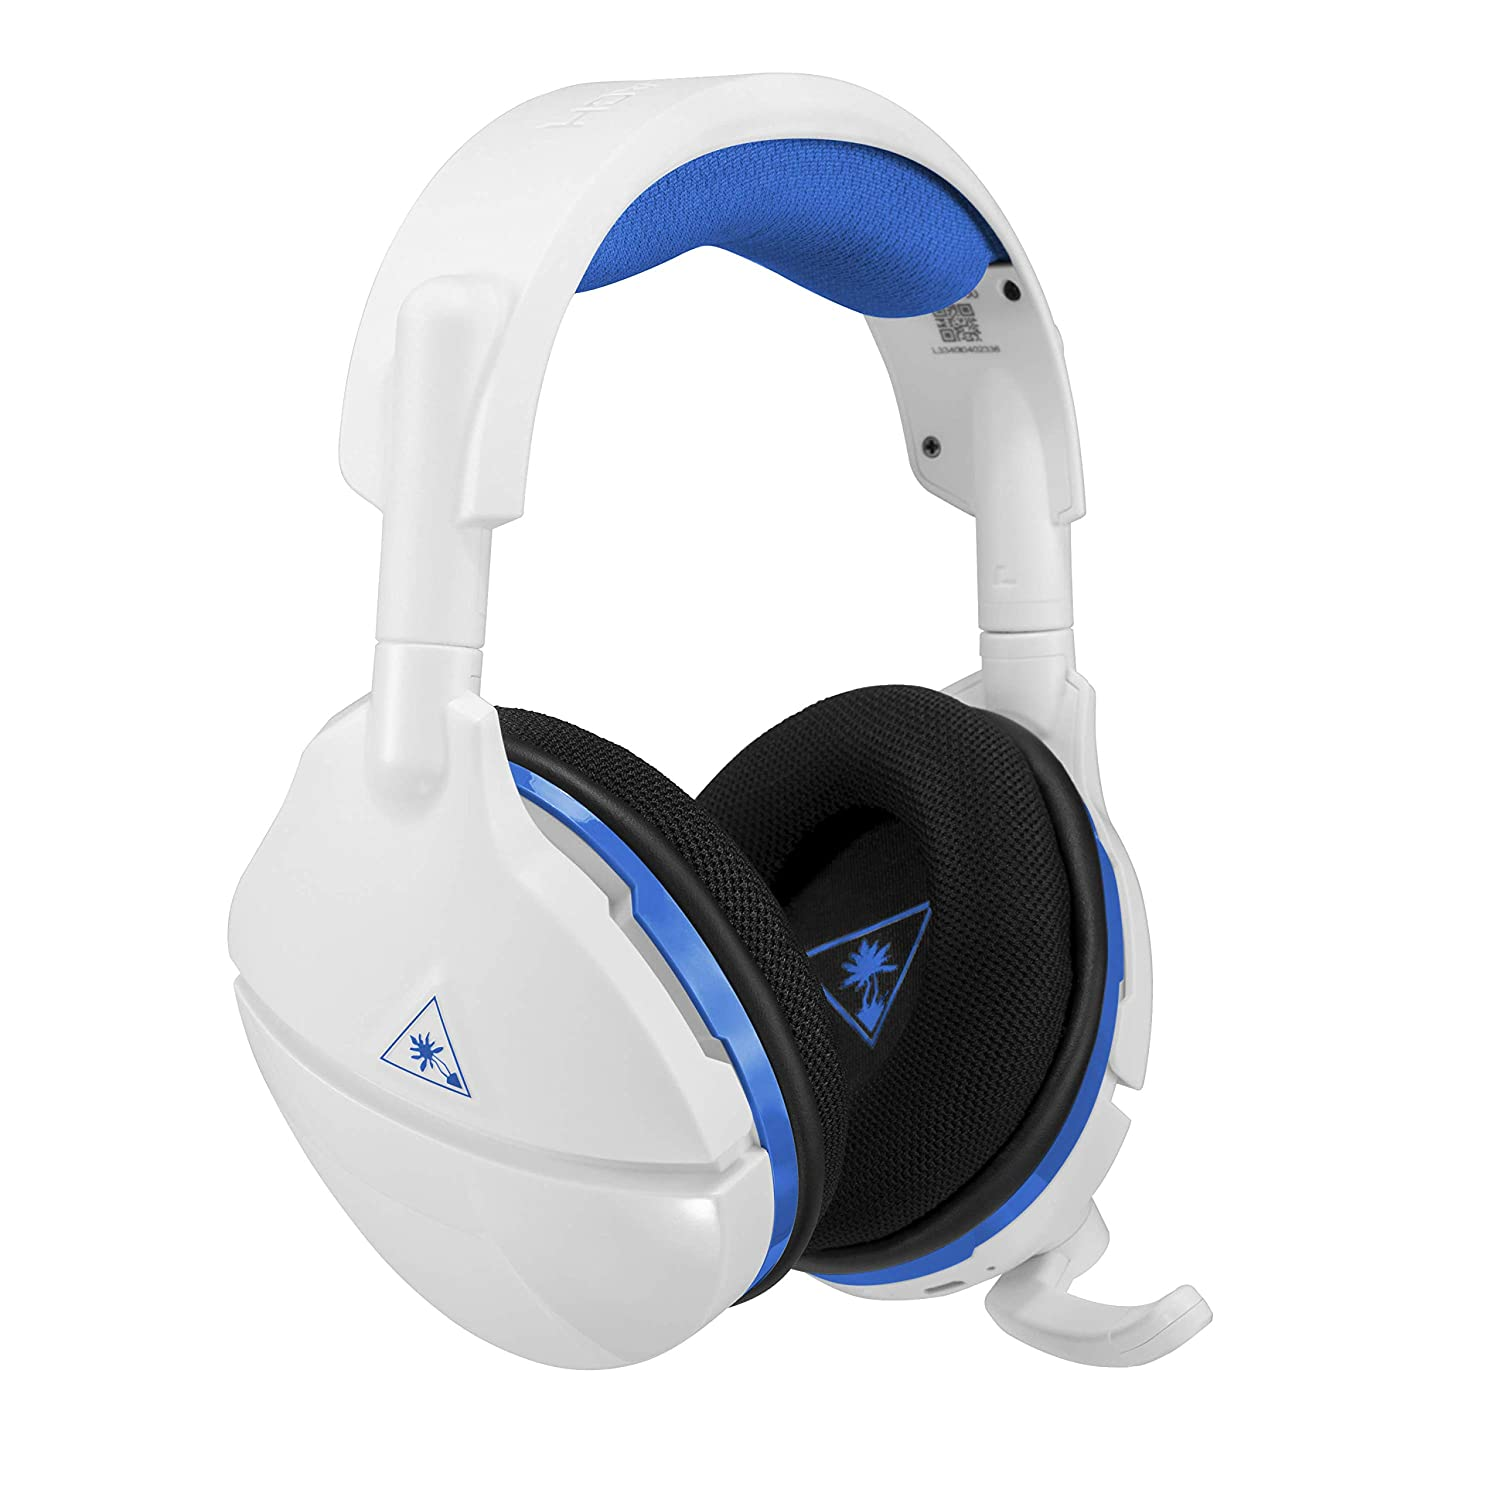 Amazon Com Turtle Beach Stealth 600 White Wireless Surround Sound Gaming Headset For Playstation 4 Pro And Playstation 4 Video Games